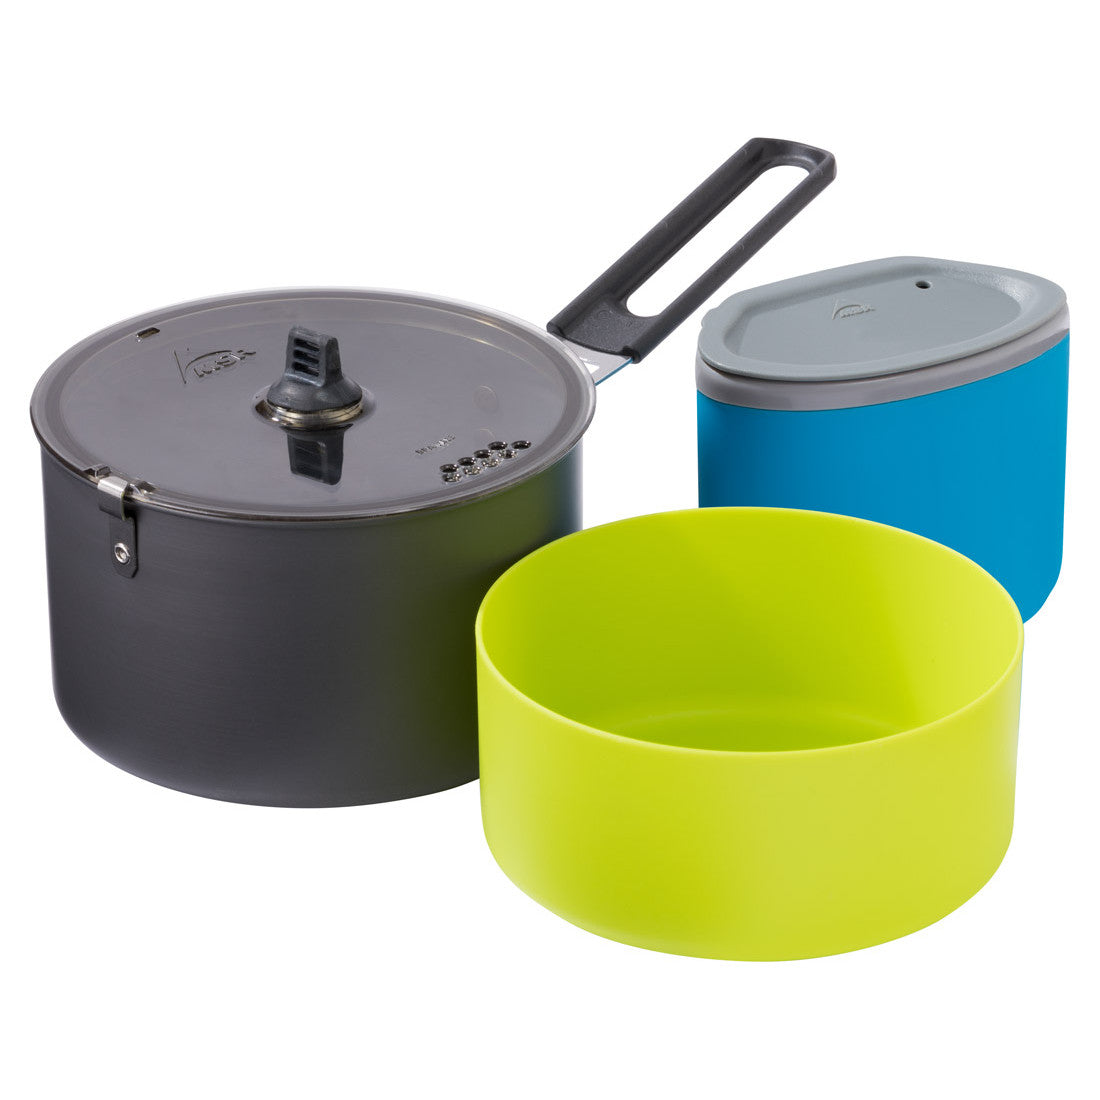 MSR Trail Lite Solo Cook Set, showing all components together